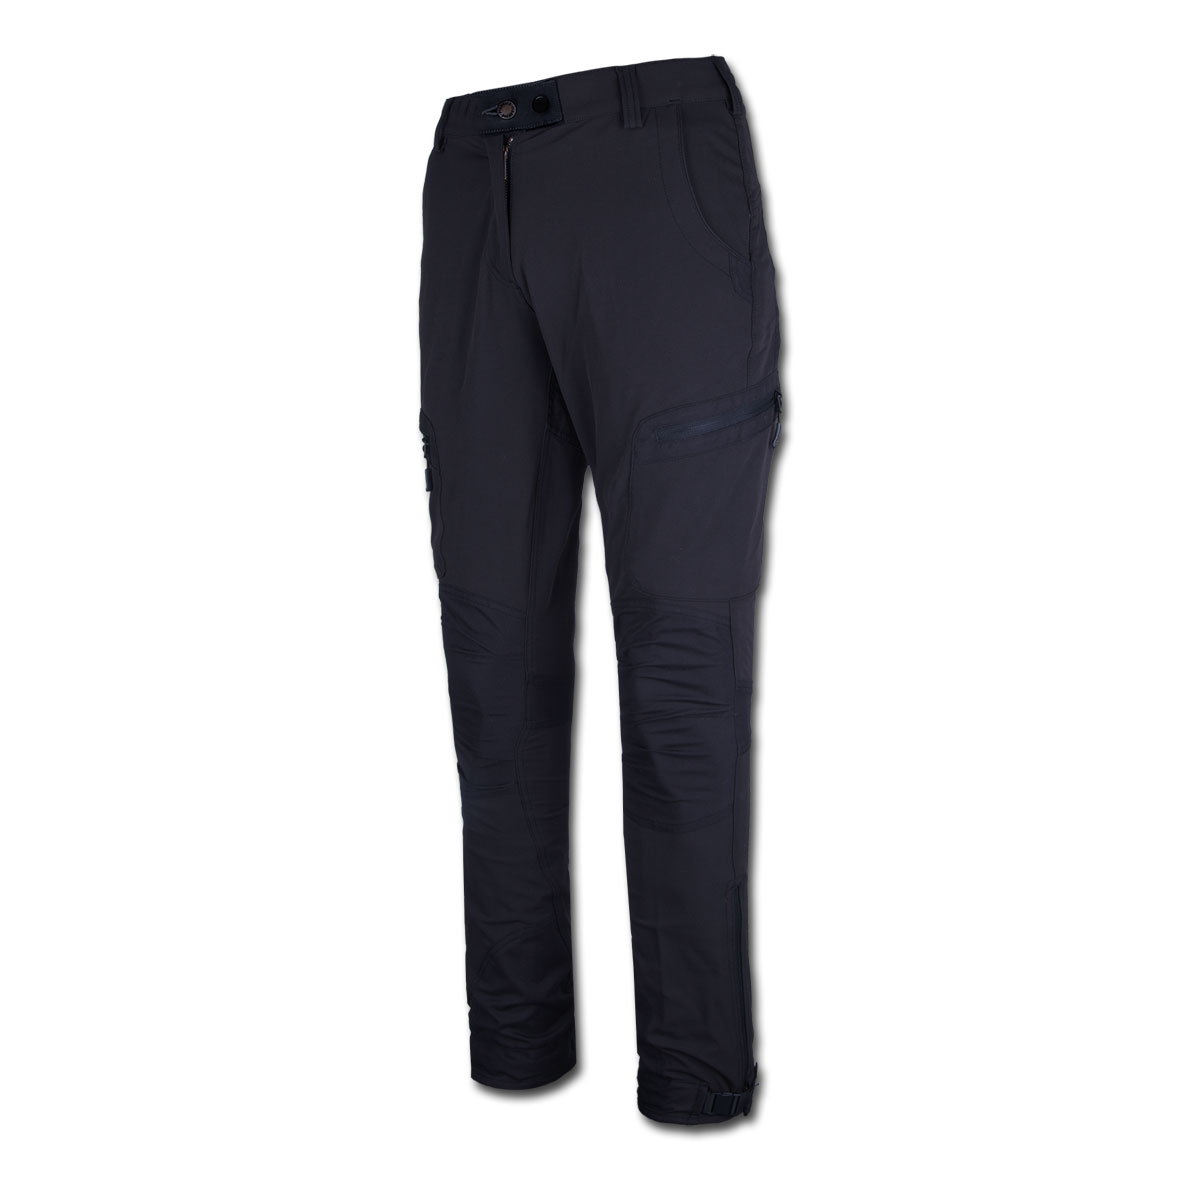 Pinewood Damenhose Wildmark Stretch Shell Schwarz im Pareyshop